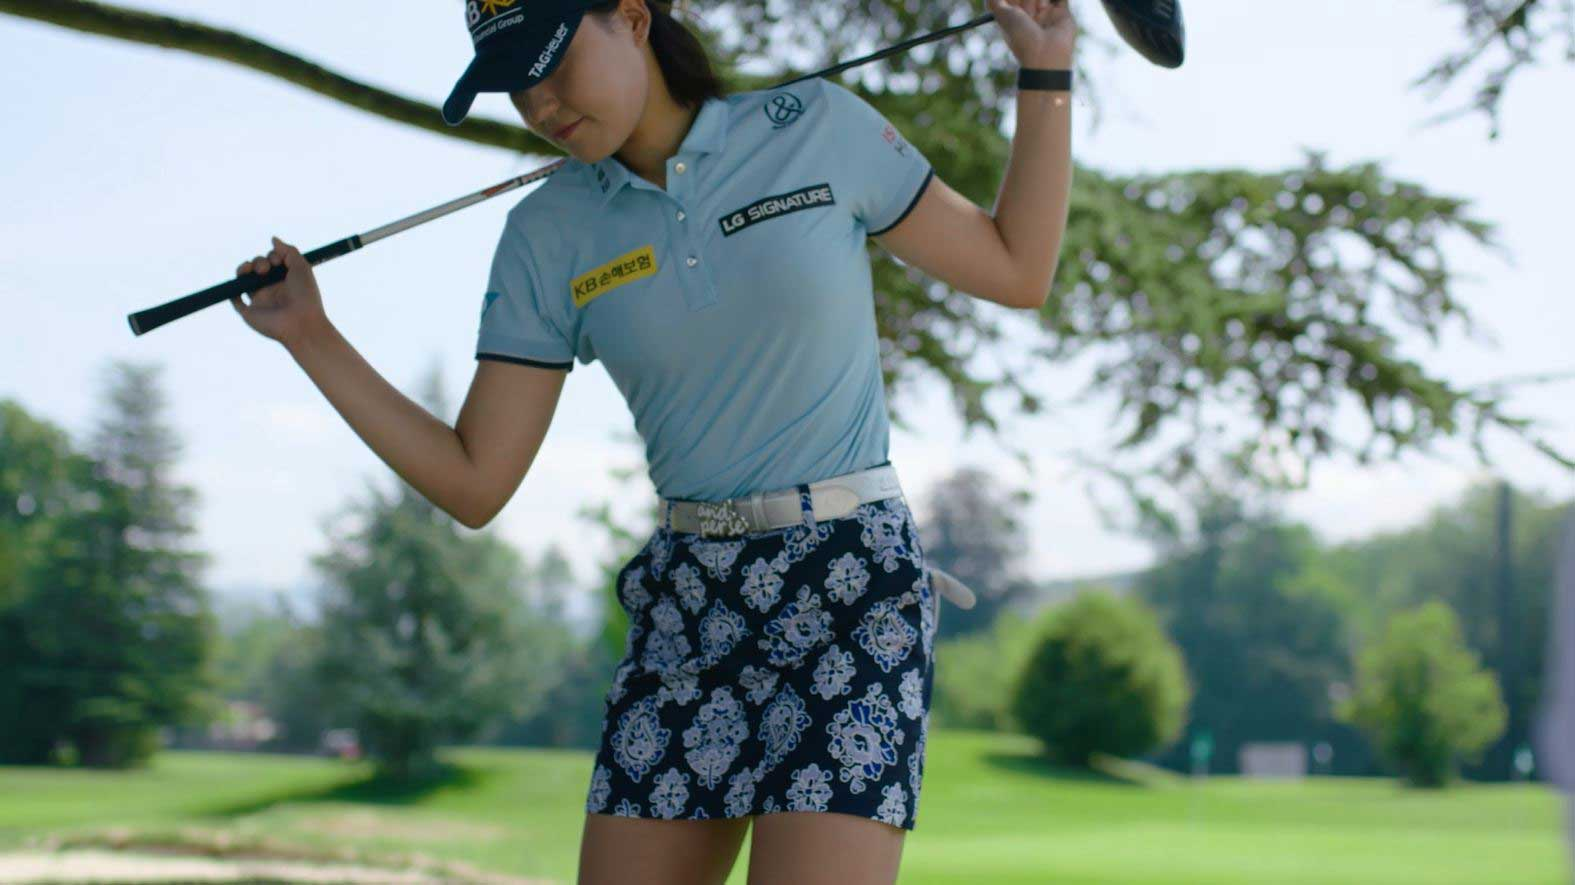 World-class professional golfer, and LG SIGNATURE Brand ambassador, Chun In-gee's preparation for a perfect swing